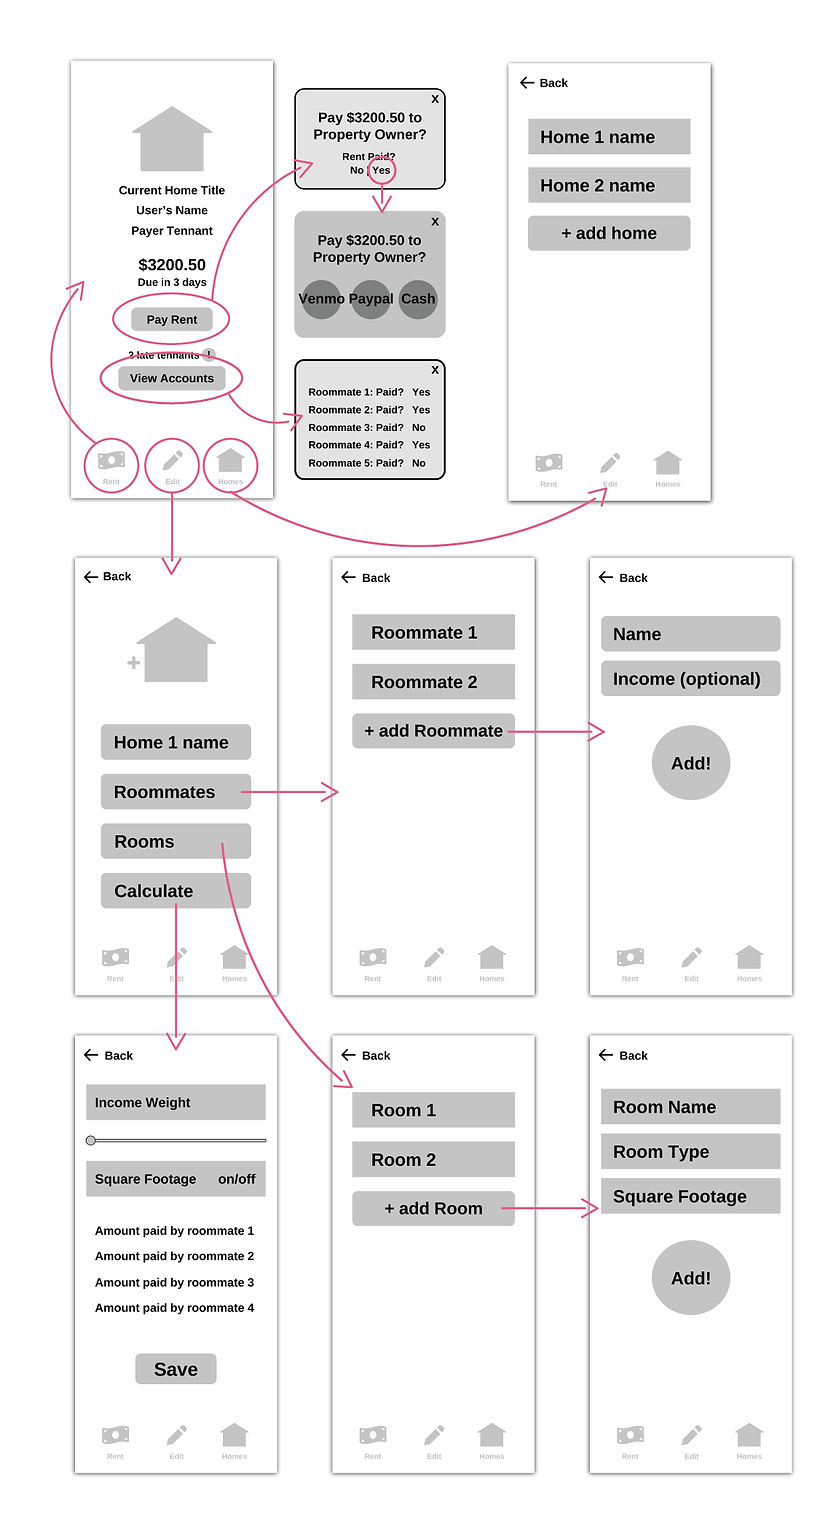 wireframes-fair-and-suqare.png